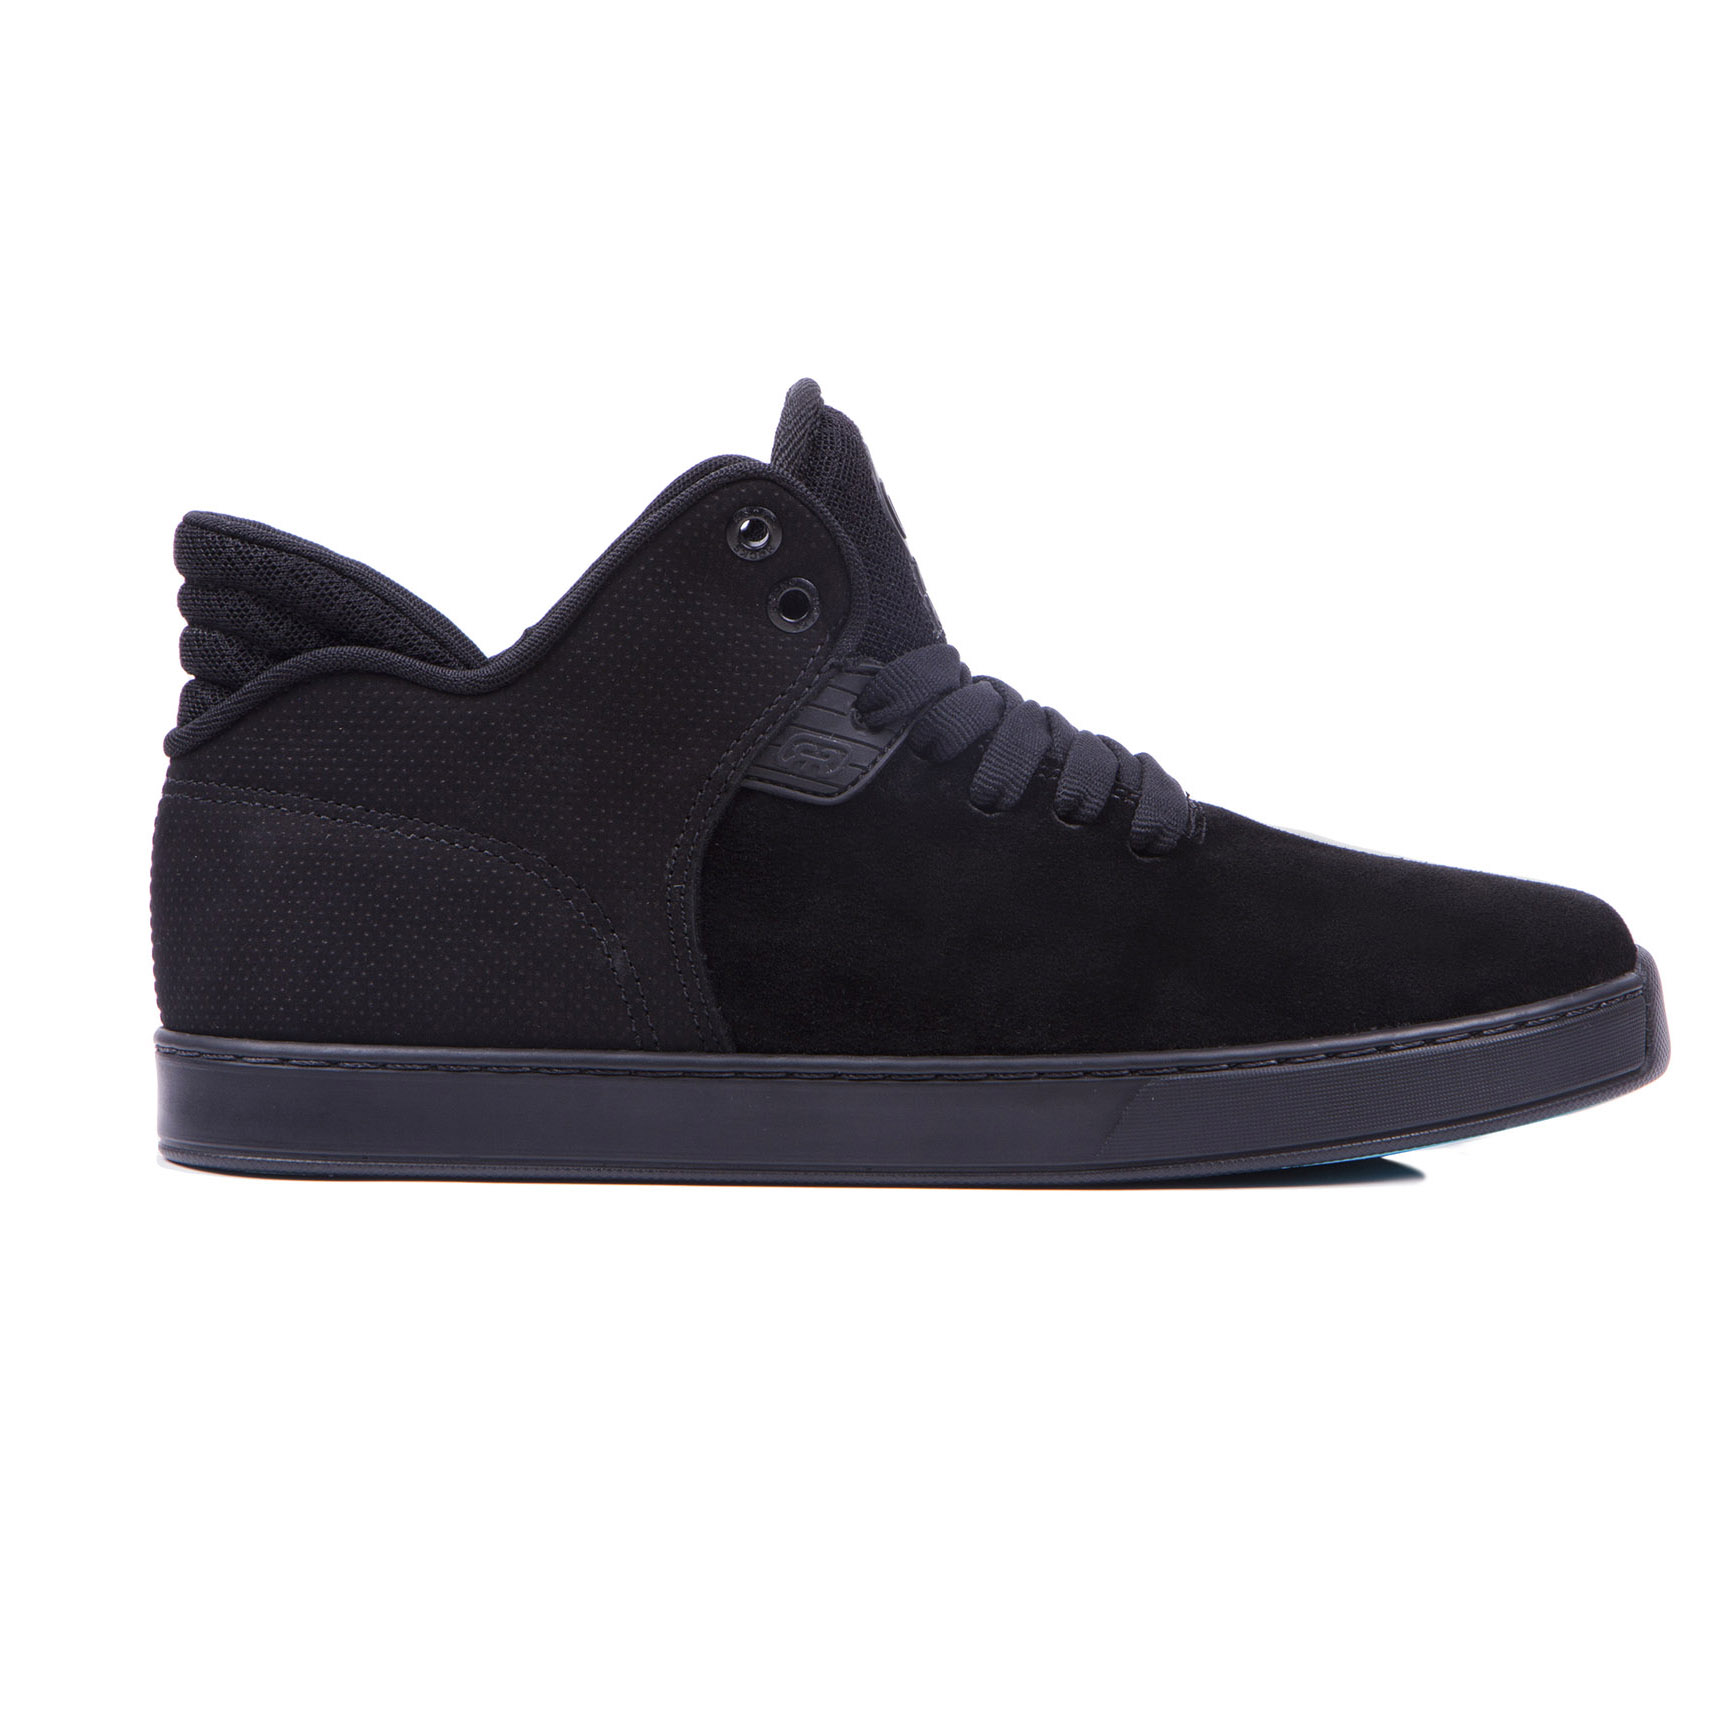 HOCKS FORMIGA TRIPLE BLACK